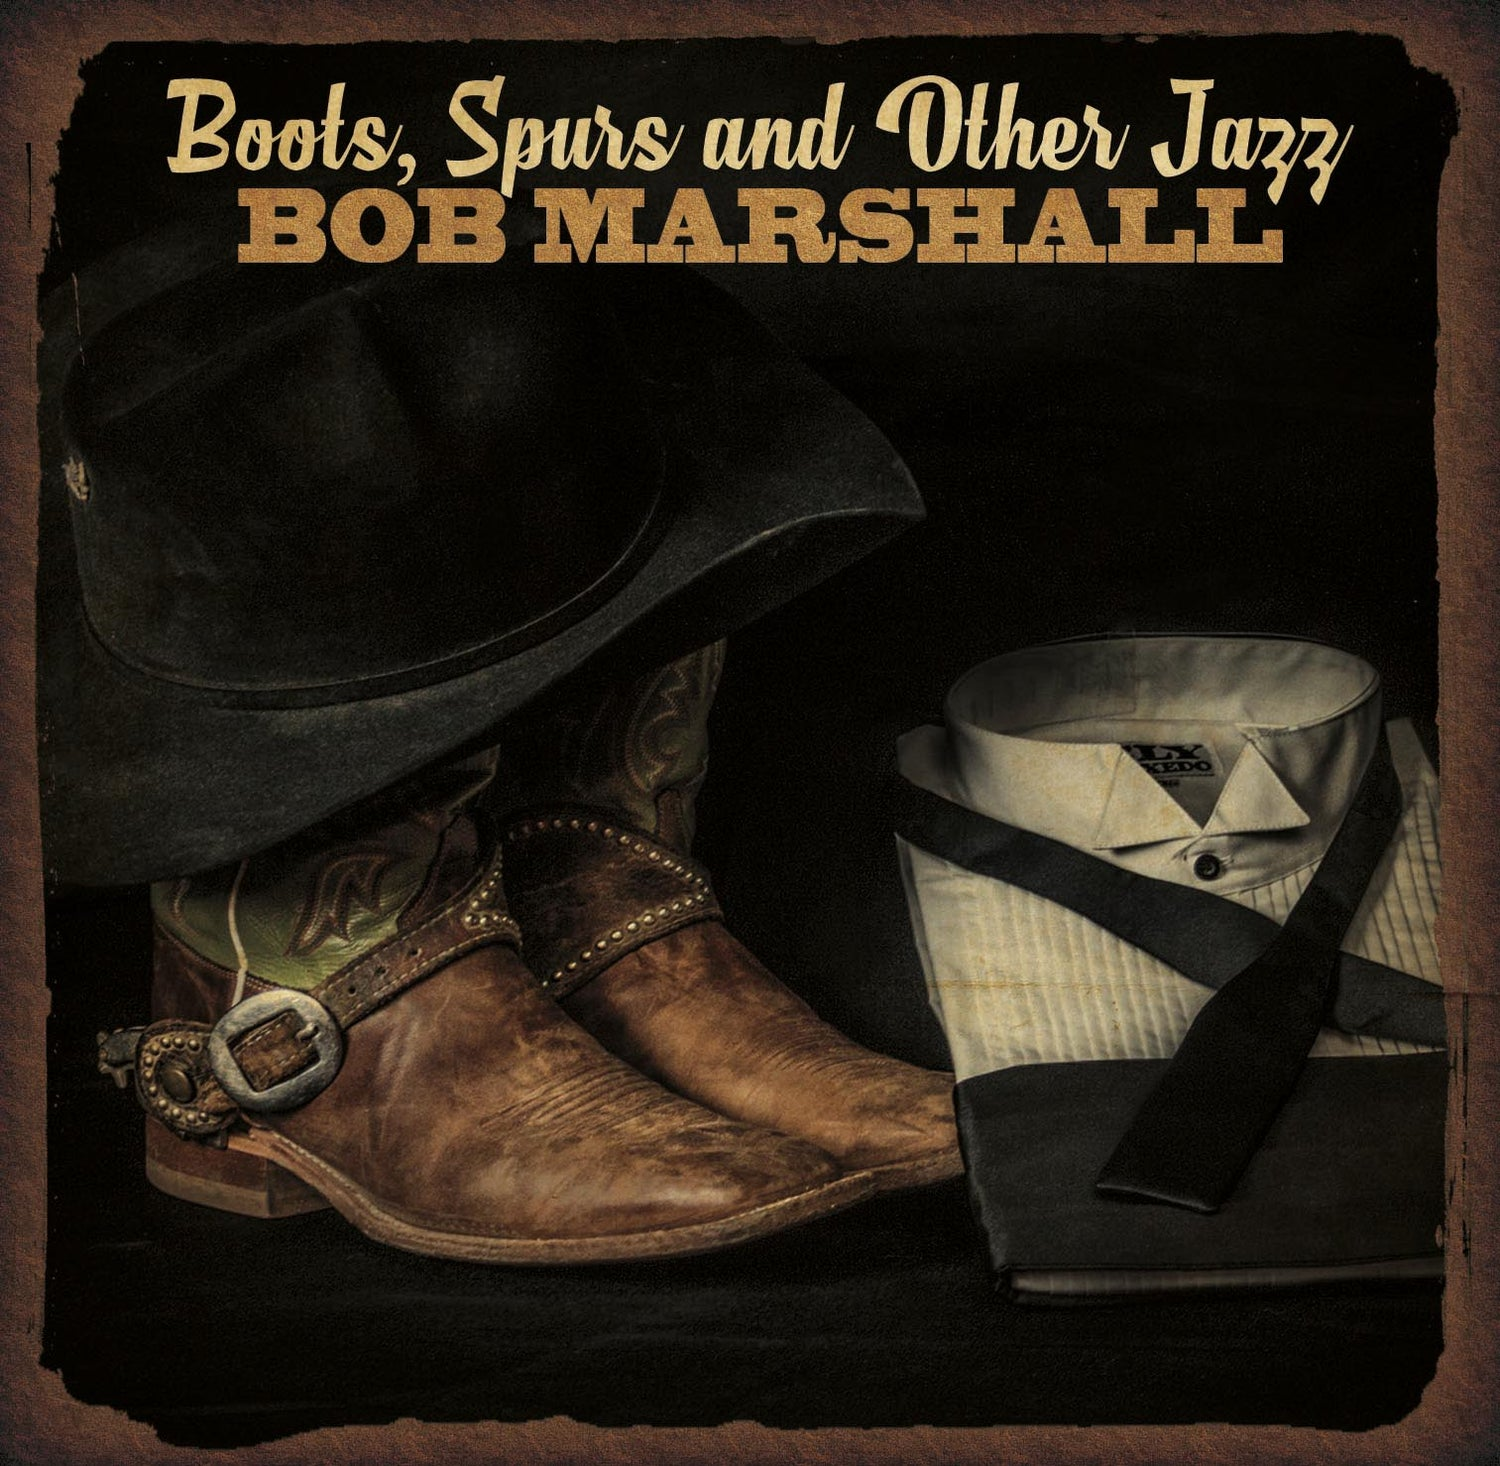 Image of Boots, Spurs, and Other Jazz